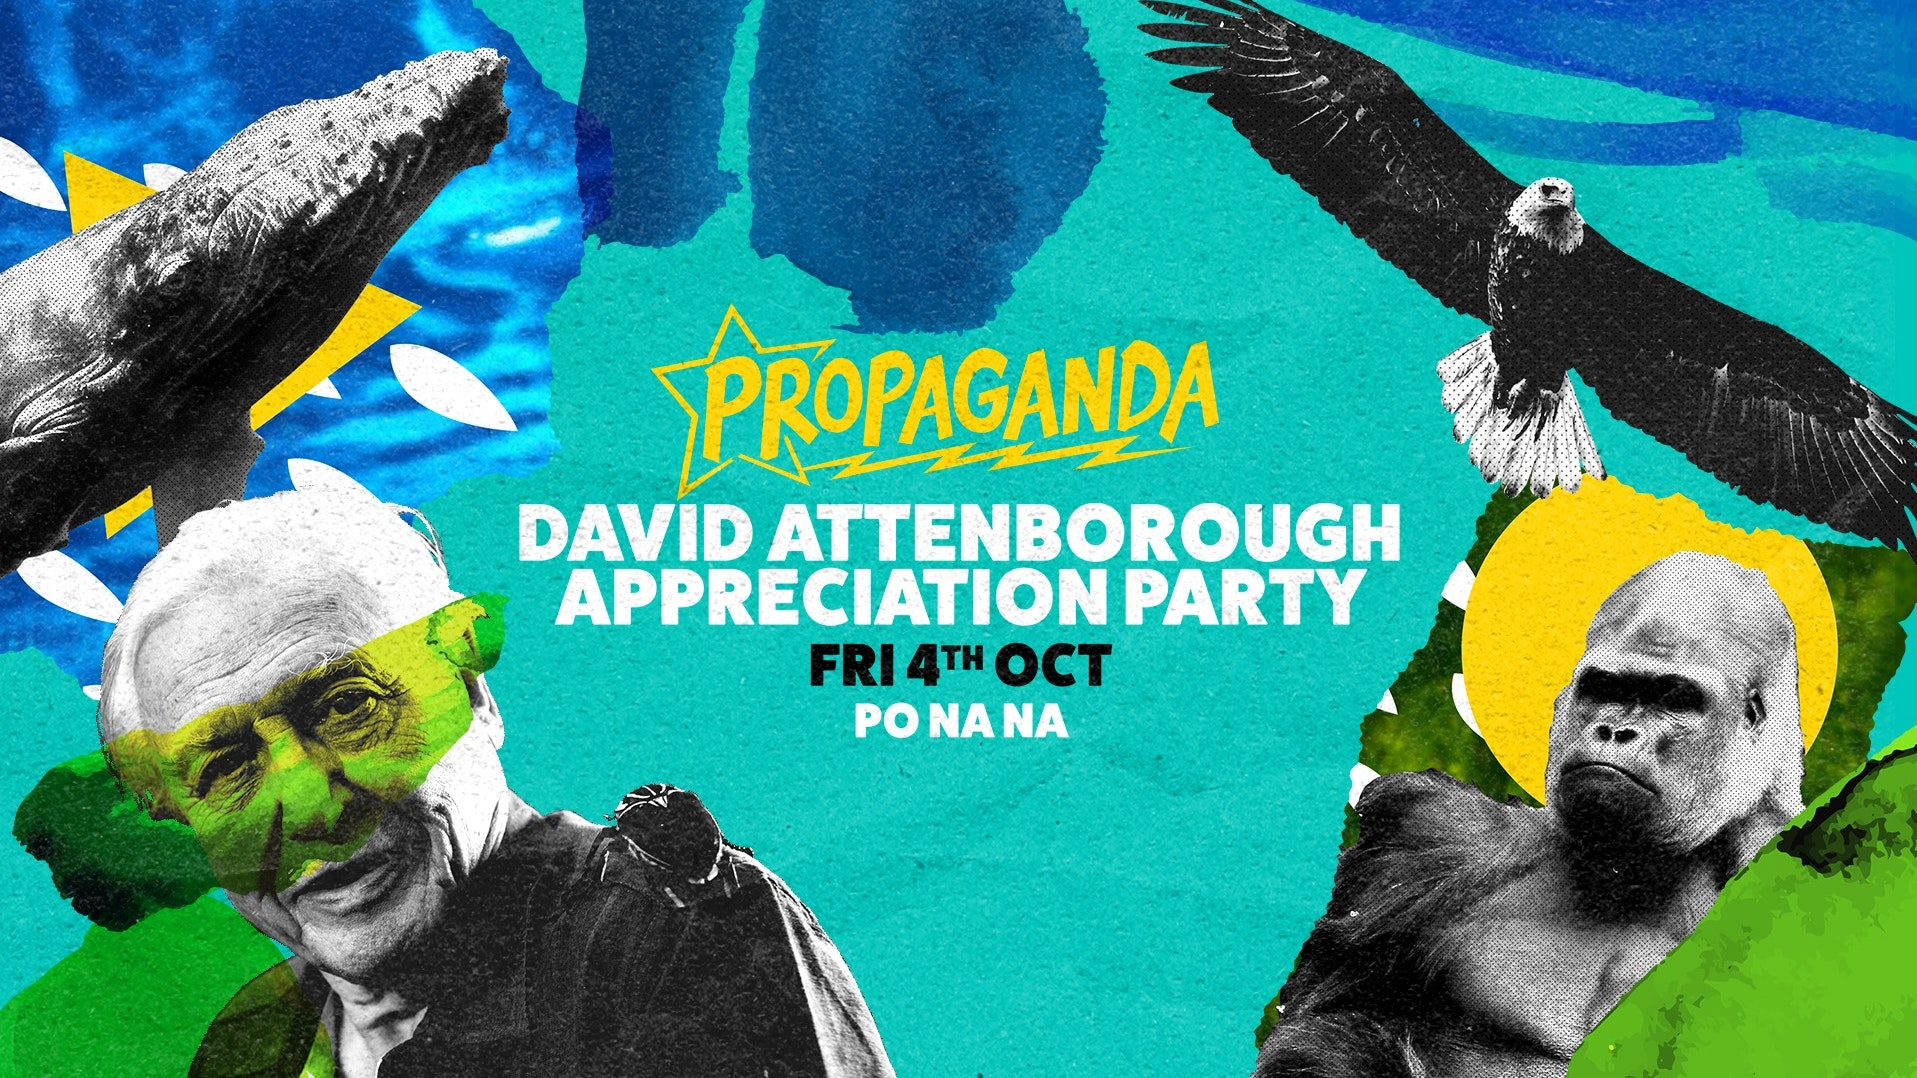 Propaganda Bath – David Attenborough Appreciation Party!